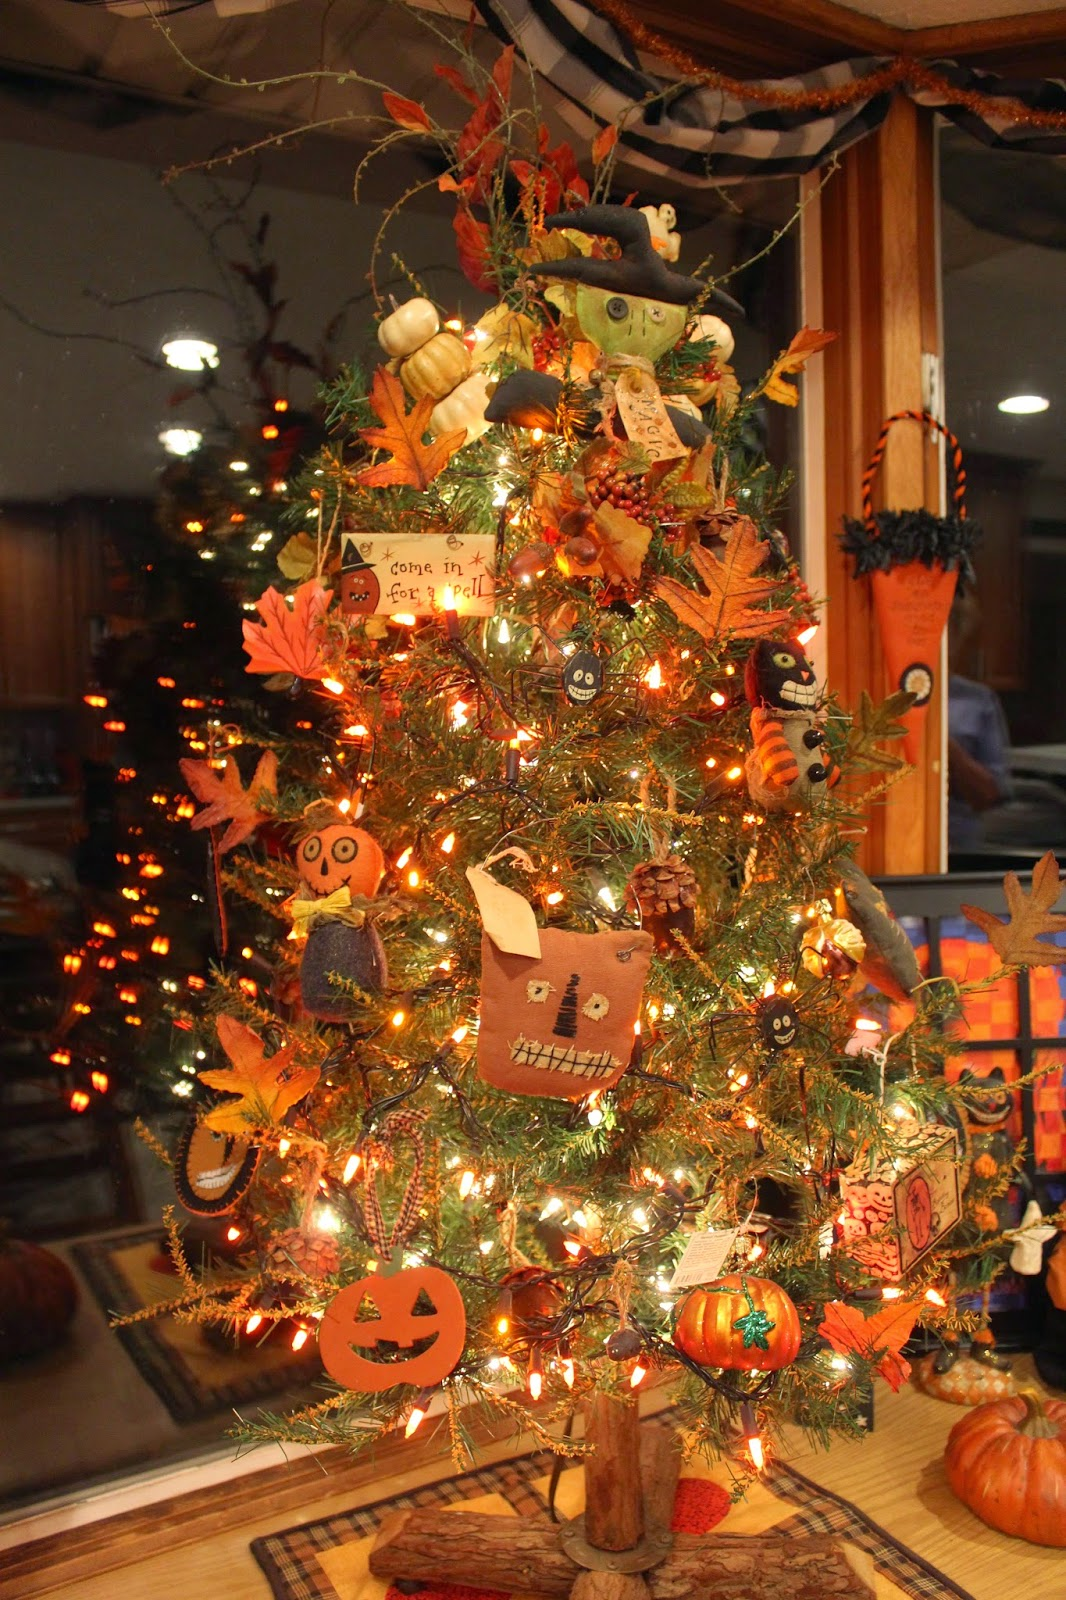 decorating a tree for autumn or halloween - Orange Christmas Tree Decorations